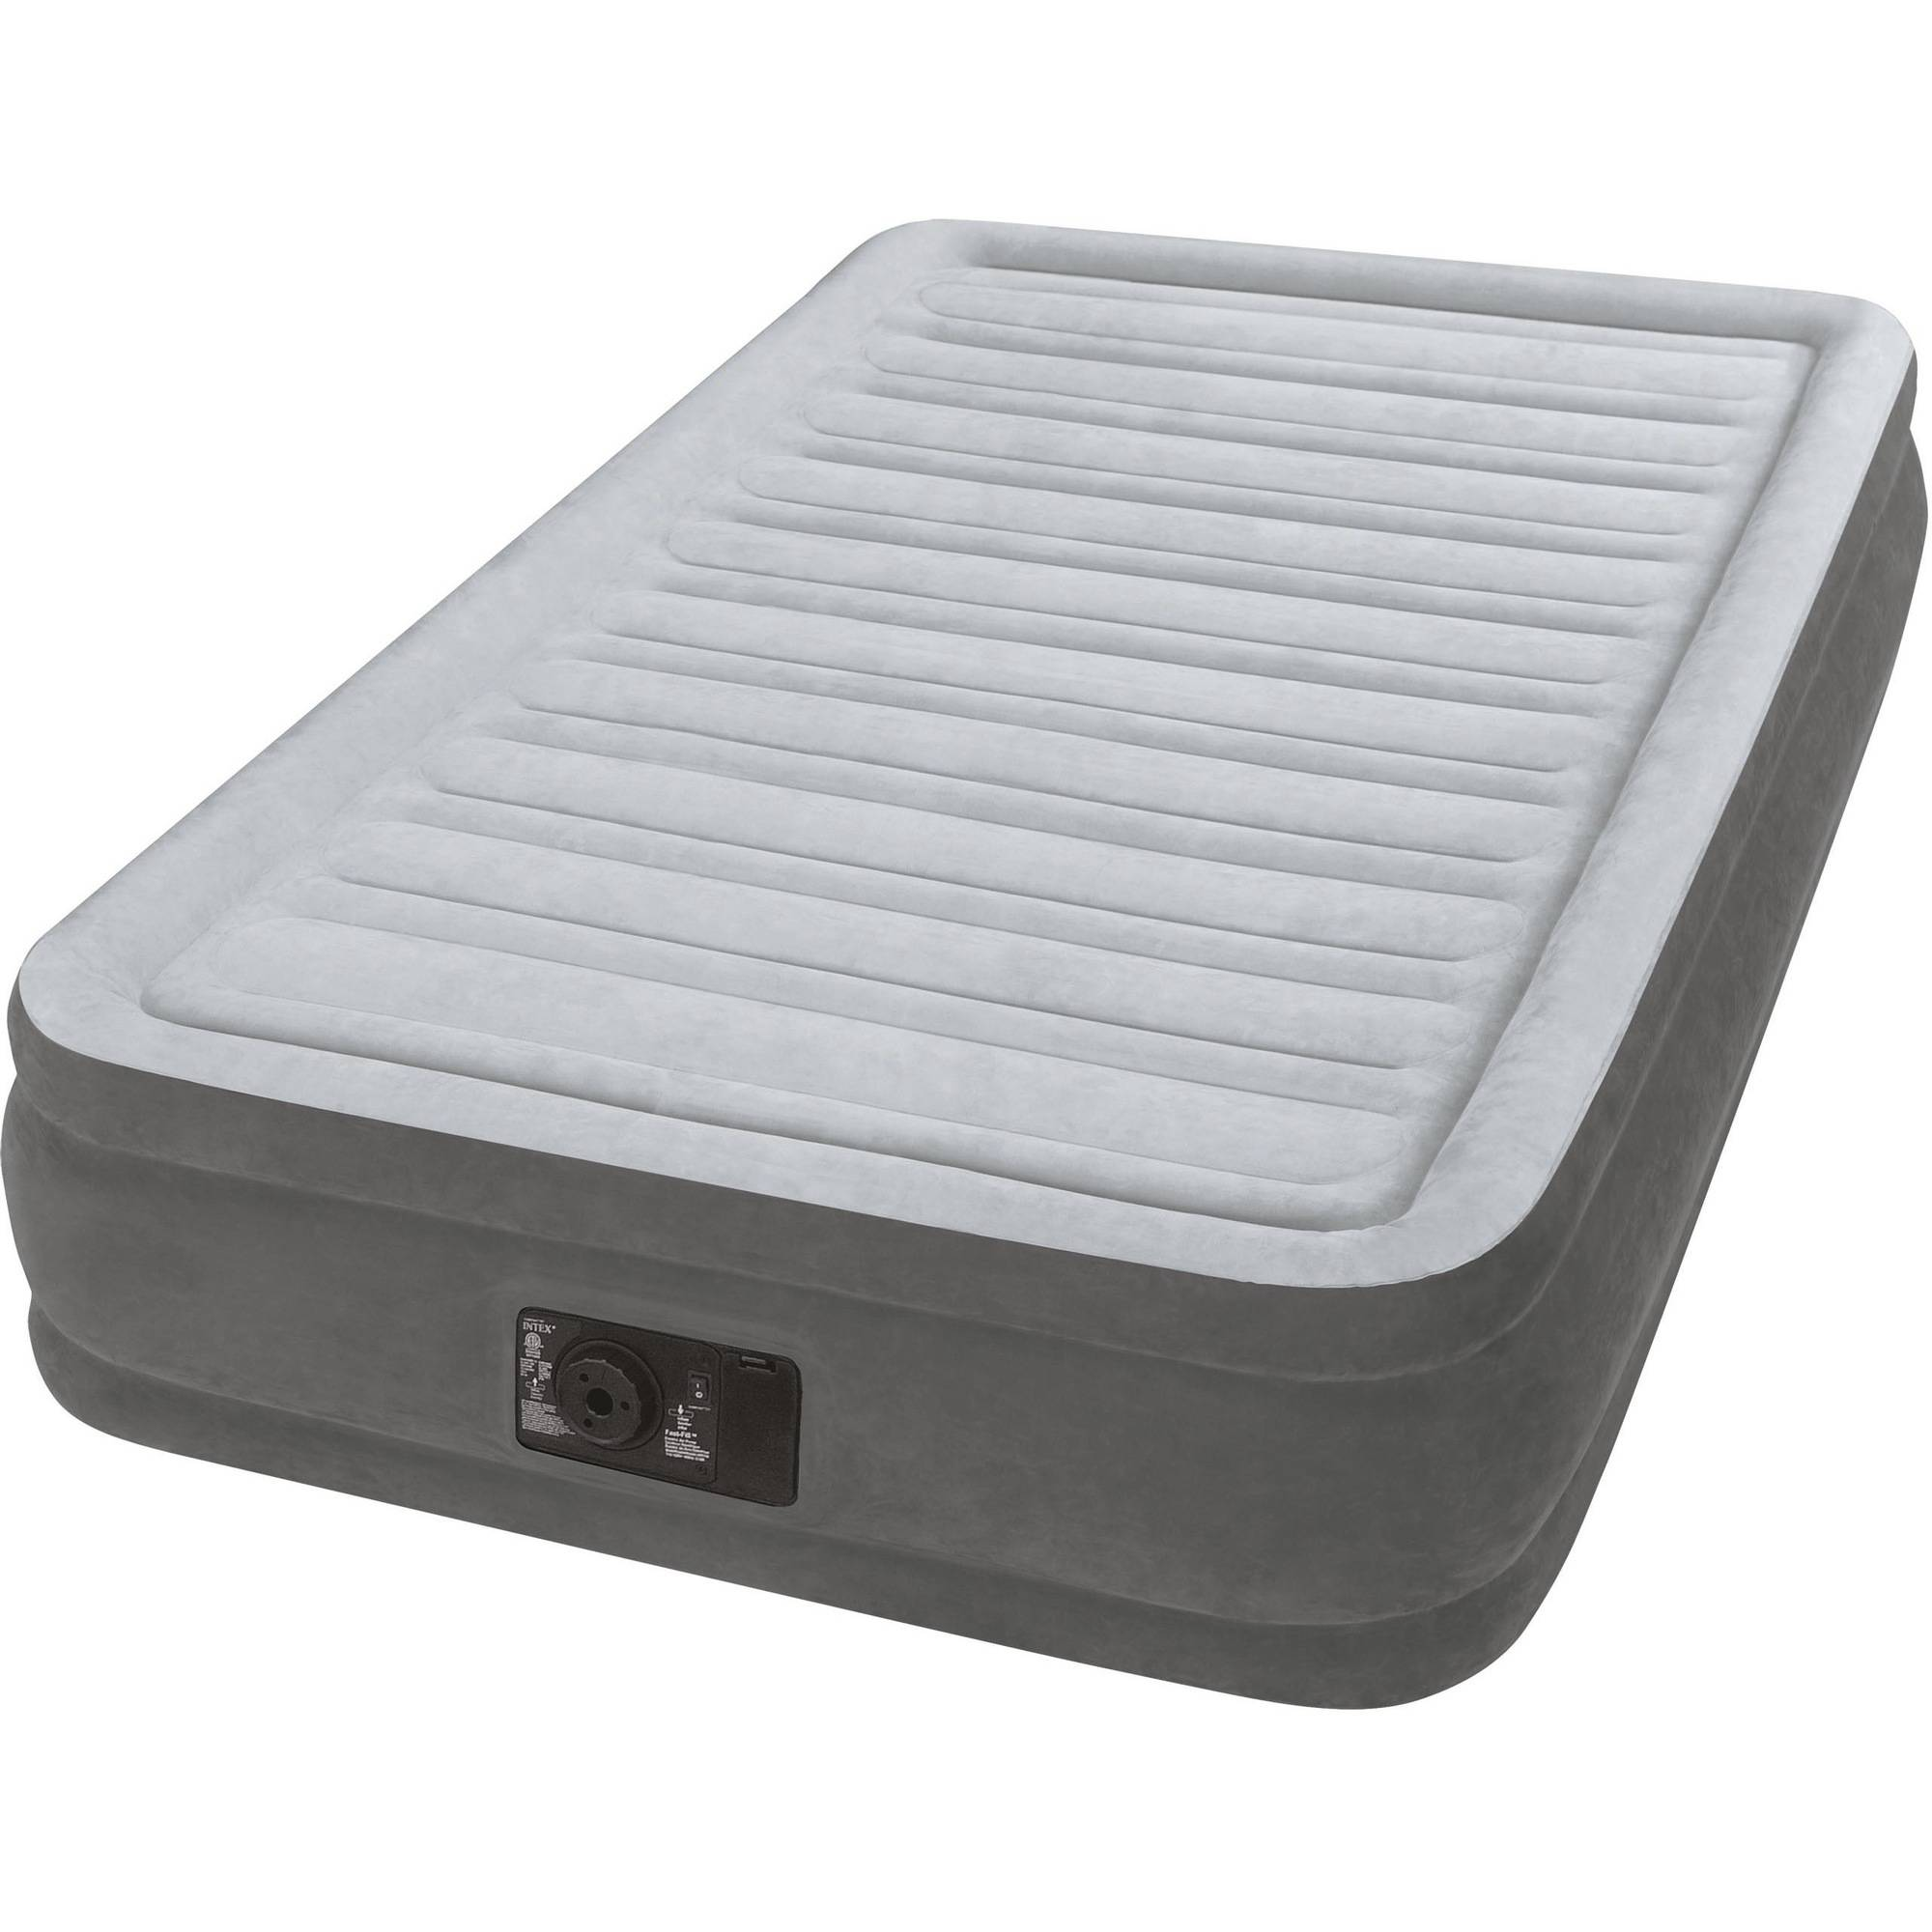 "Intex Twin 13"" DuraBeam Comfort Plush Mid-Rise Airbed Mattress"